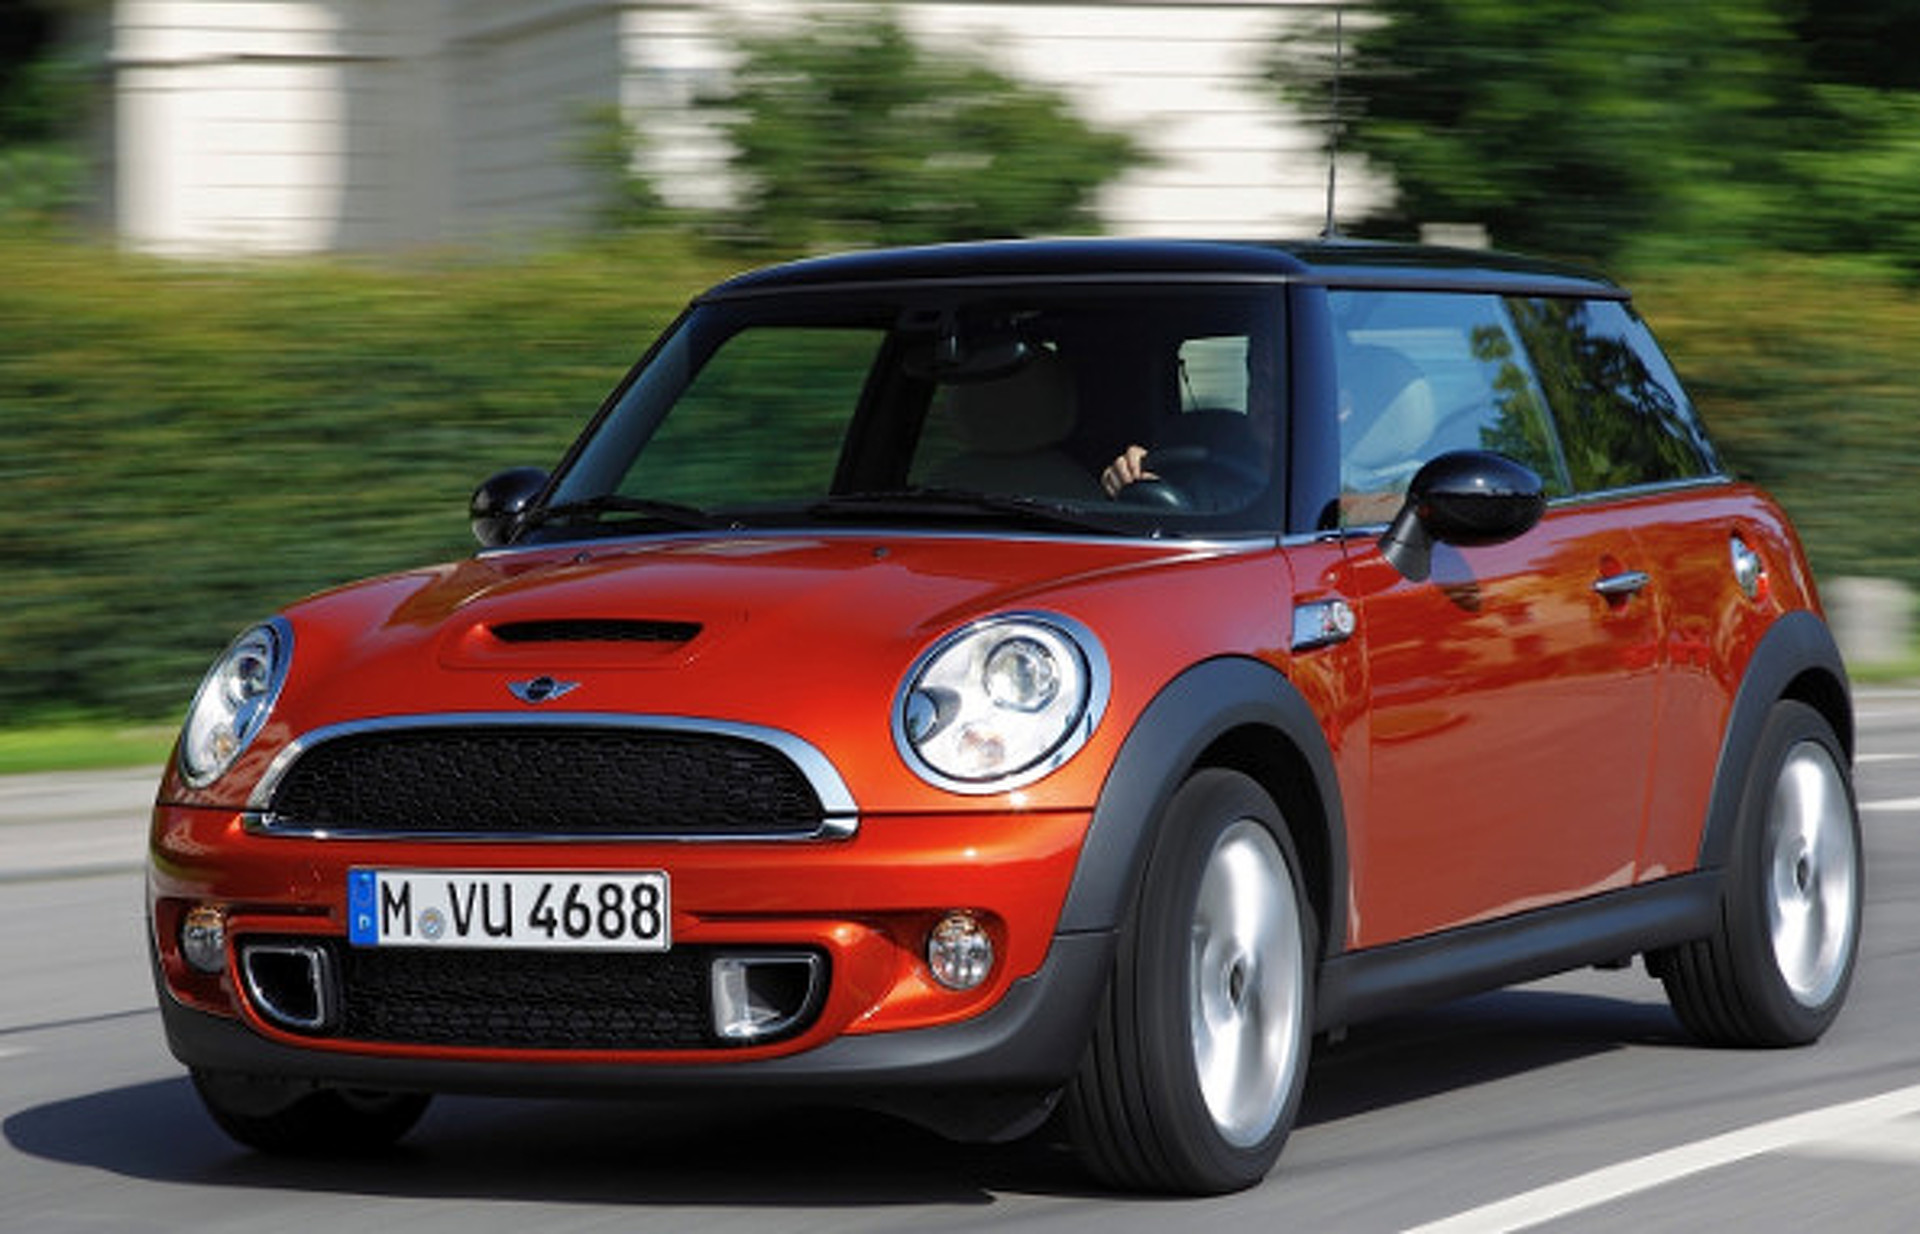 2015 MINI Cooper: How Does it Size up to Other Small Cars?